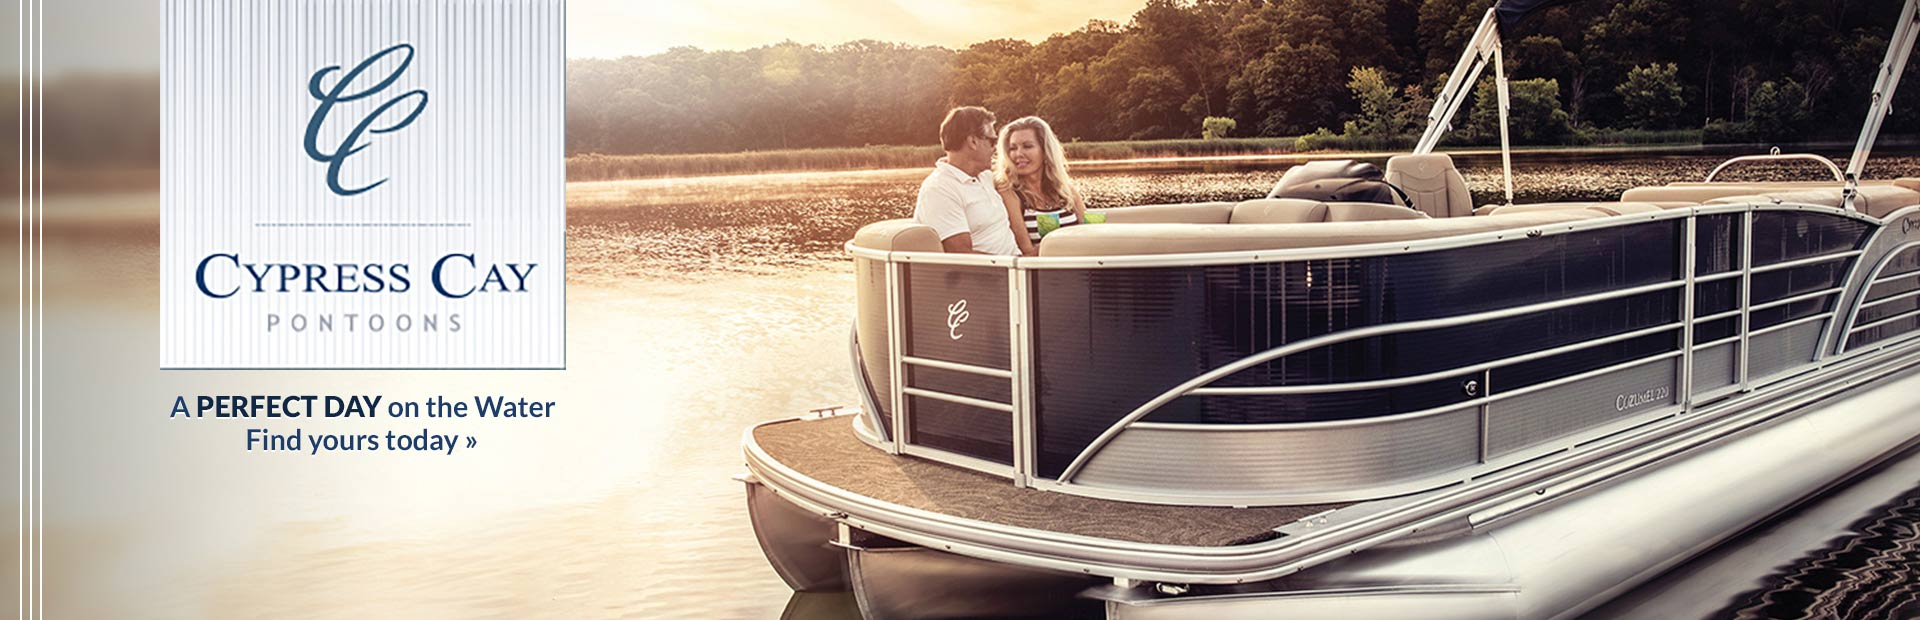 Cypress Cay Pontoons: Click here to view the models.